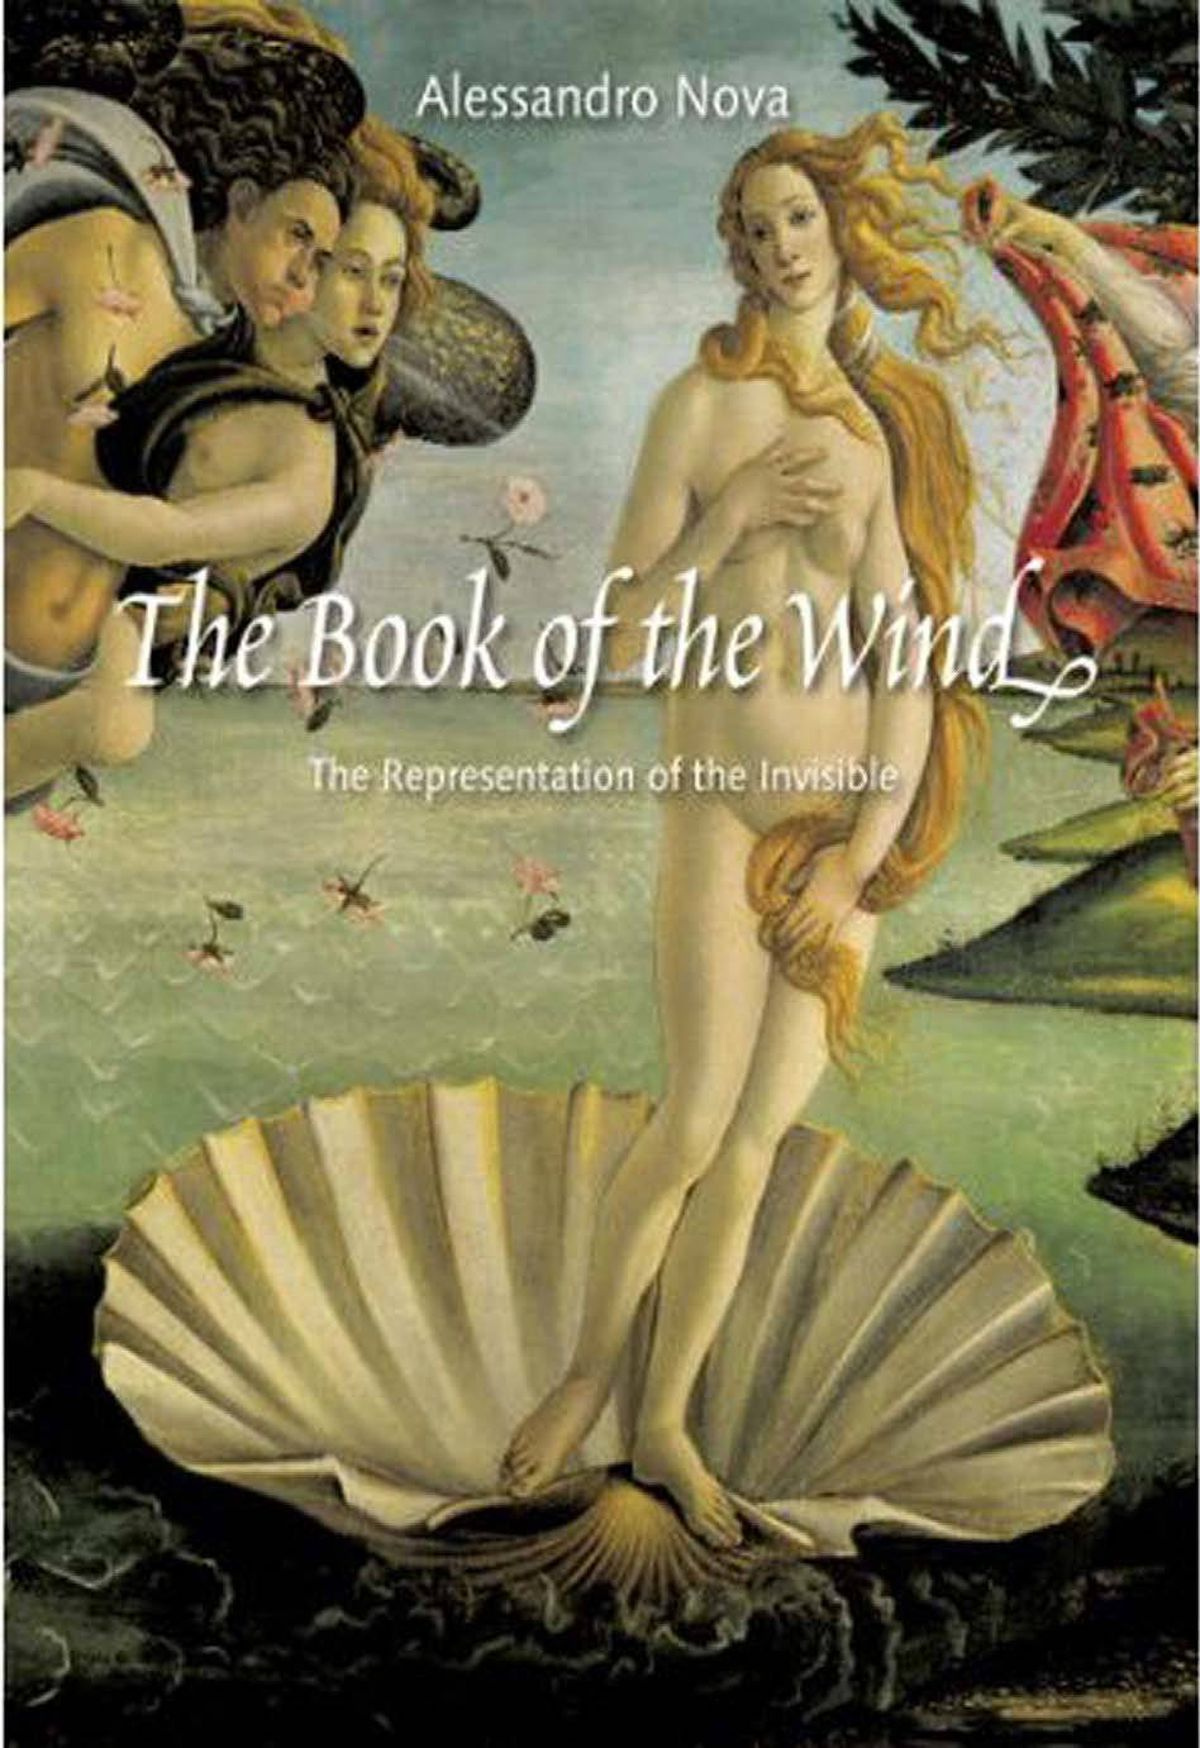 THE BOOK OF THE WIND The Representation of the Invisible, By Alessandro Nova (McGill-Queen's, 223 pages, $75) How can we depict what we cannot see? This challenge has long fascinated artists intent on capturing the wind – the godlike force with powers of life and death. From luminous ancient sculptures to gleaming medieval manuscripts to swirling satellite images of El Nino, this sumptuous book explores the iconic role of wind in art and literature.